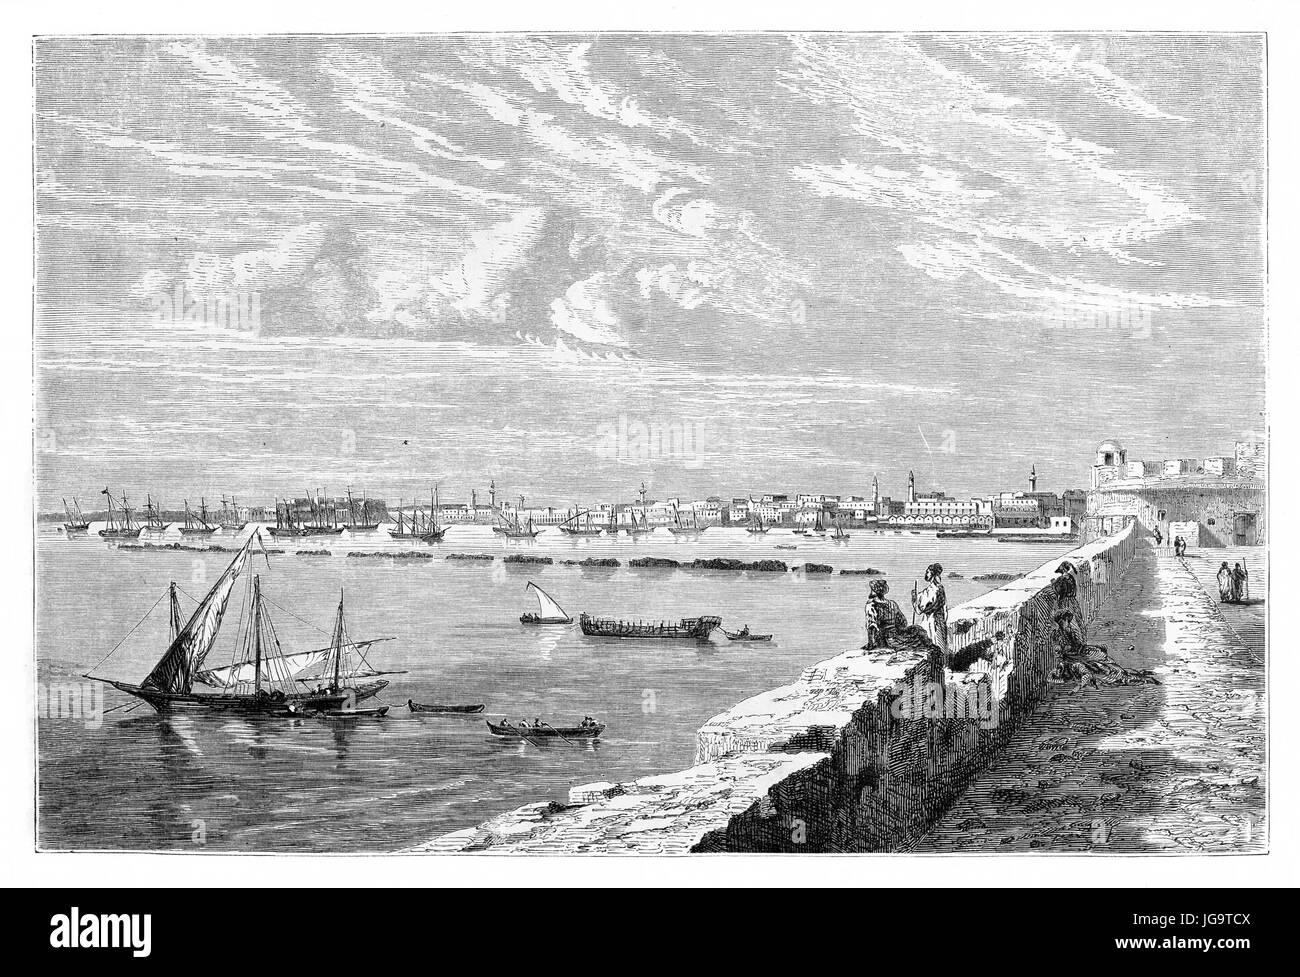 Old view of Tripoli, Libya. Created by Berard after photo by unknown author, published on Le Tour du Monde, Paris, - Stock Image